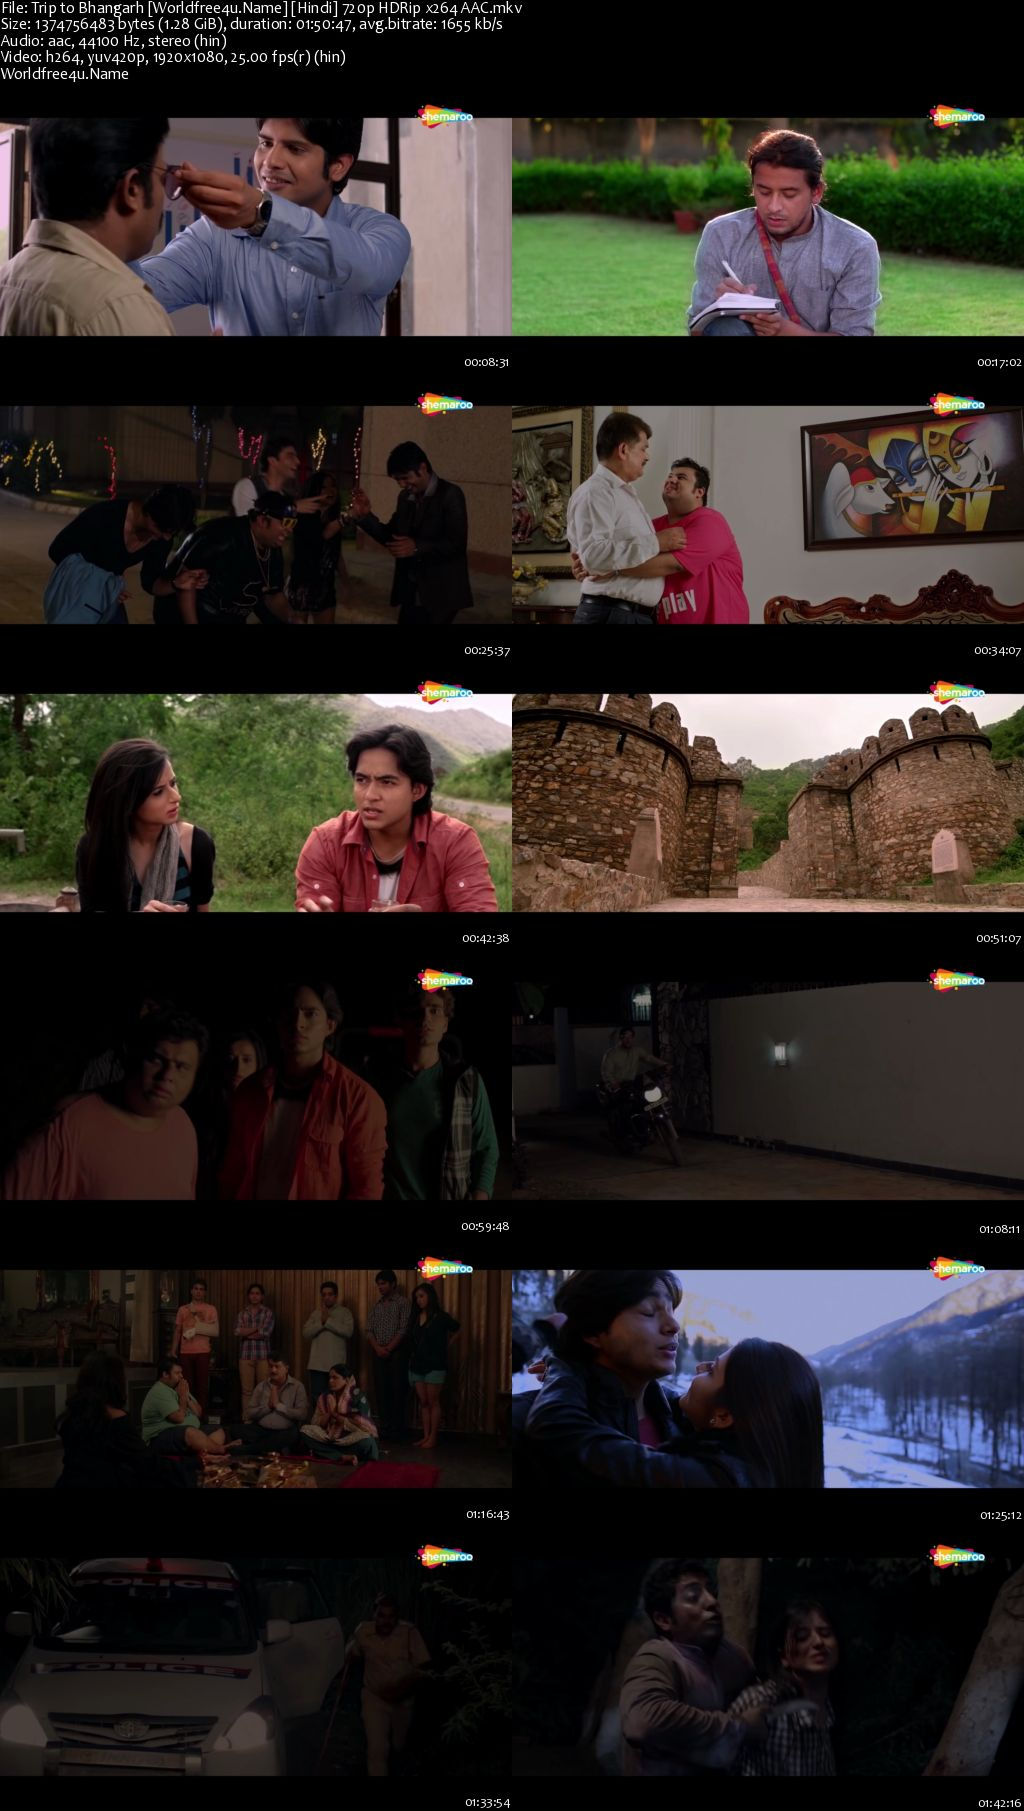 Trip to Bhangarh: Asia's Most Haunted Place 2014 Hindi HDRip 720p